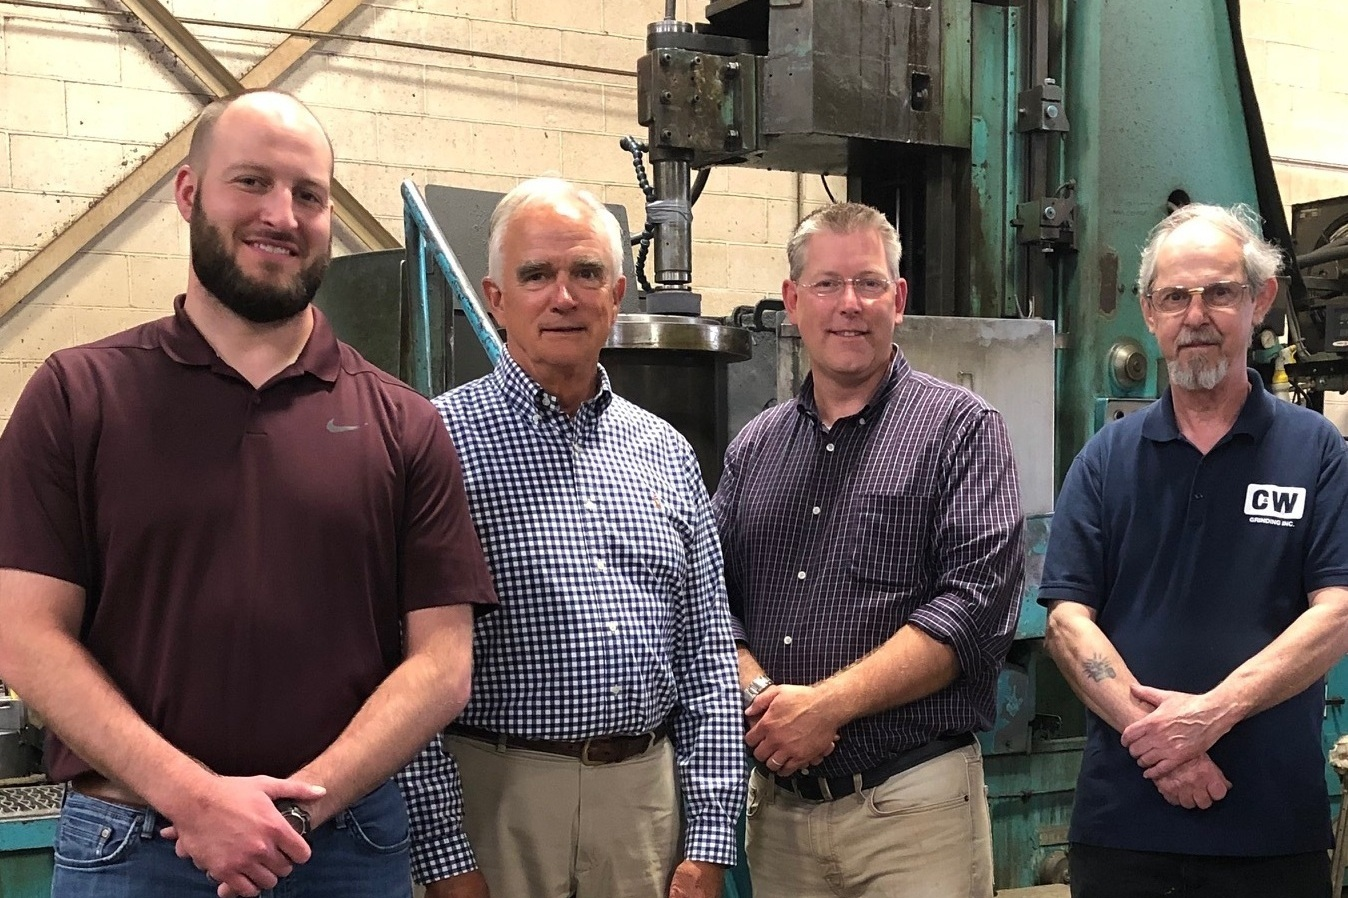 Leadership Team - C&W Grinding is led by Marcel Uhrich and Mike Gaul. With a combined 50 years of experience in engineering, leadership and manufacturing best practices, Marcel and Mike are proud of the continuous improvements employed by C&W to optimally service our valued customers.